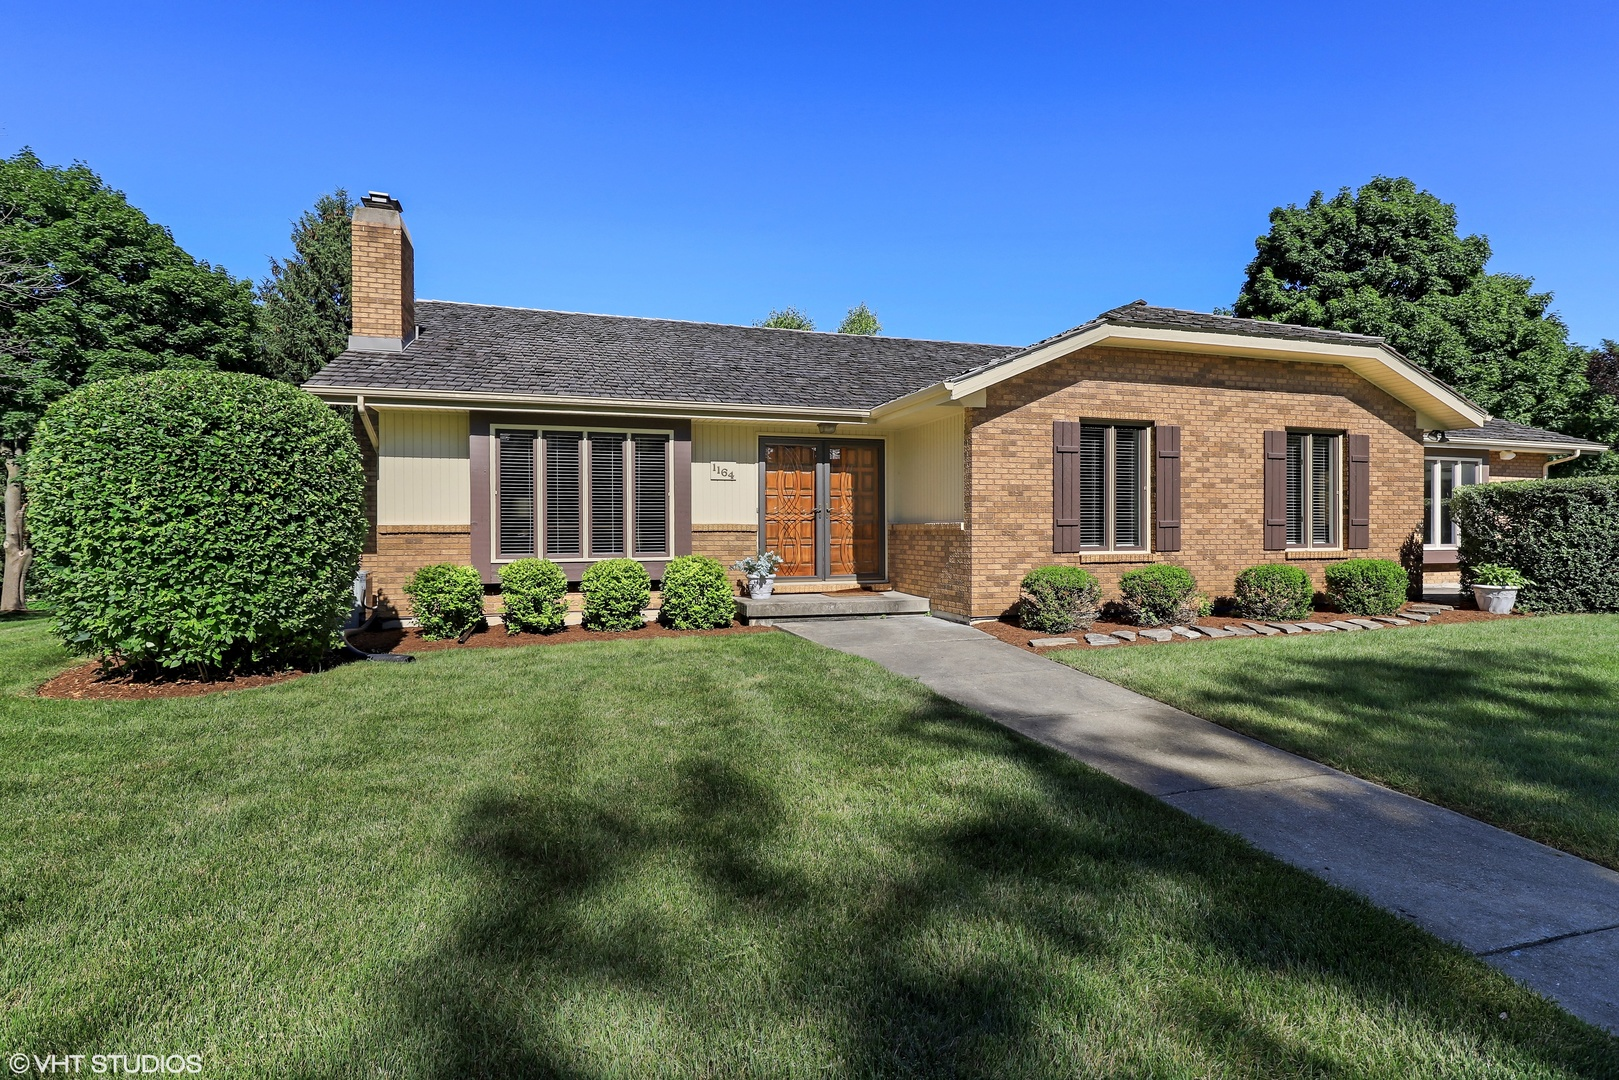 1164 Furlong Drive, Libertyville in Lake County, IL 60048 Home for Sale